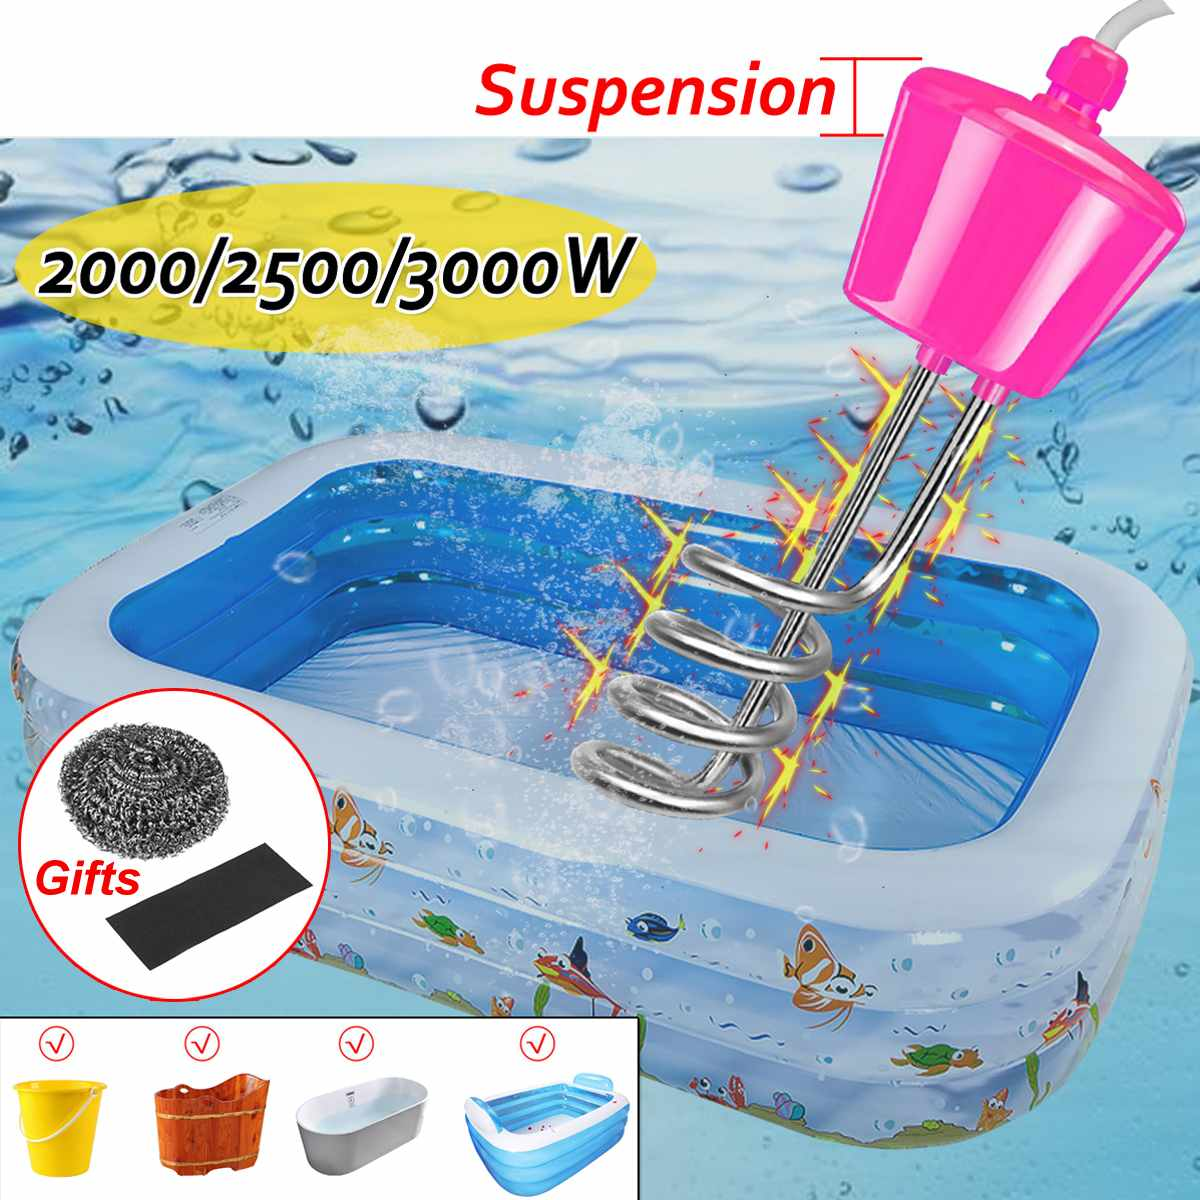 2000/2500/3000W 3M Electricity Immersion Water Heater Element Boiler Portable Water Heating Rods For Inflatable Swimming Pool